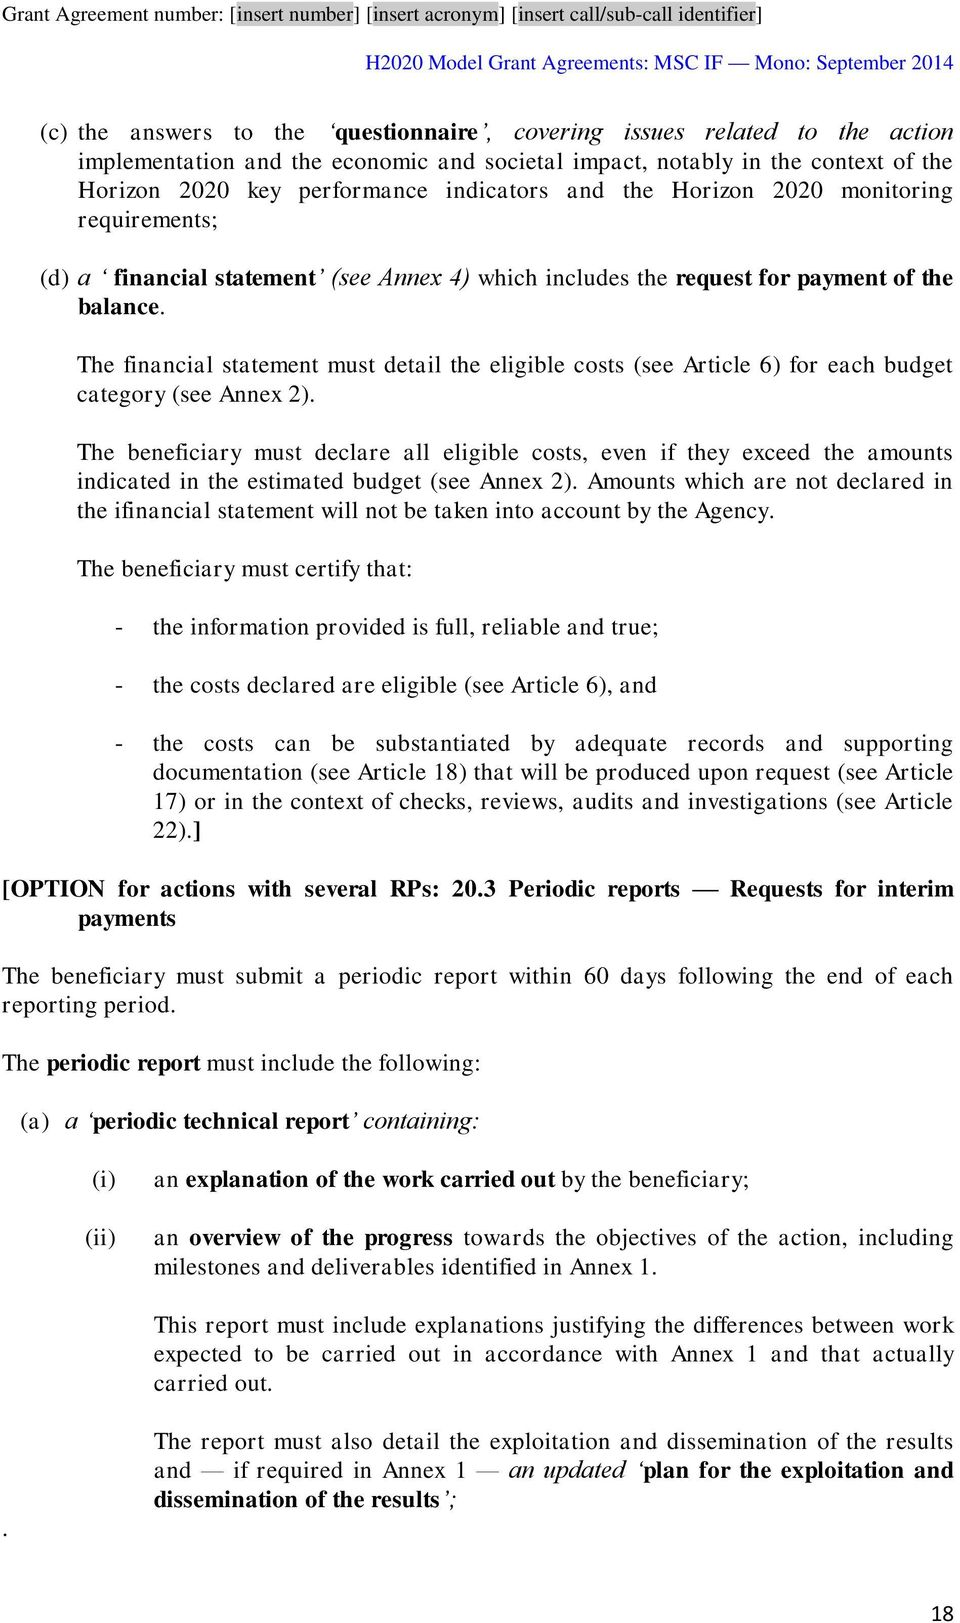 The financial statement must detail the eligible costs (see Article 6) for each budget category (see Annex 2).